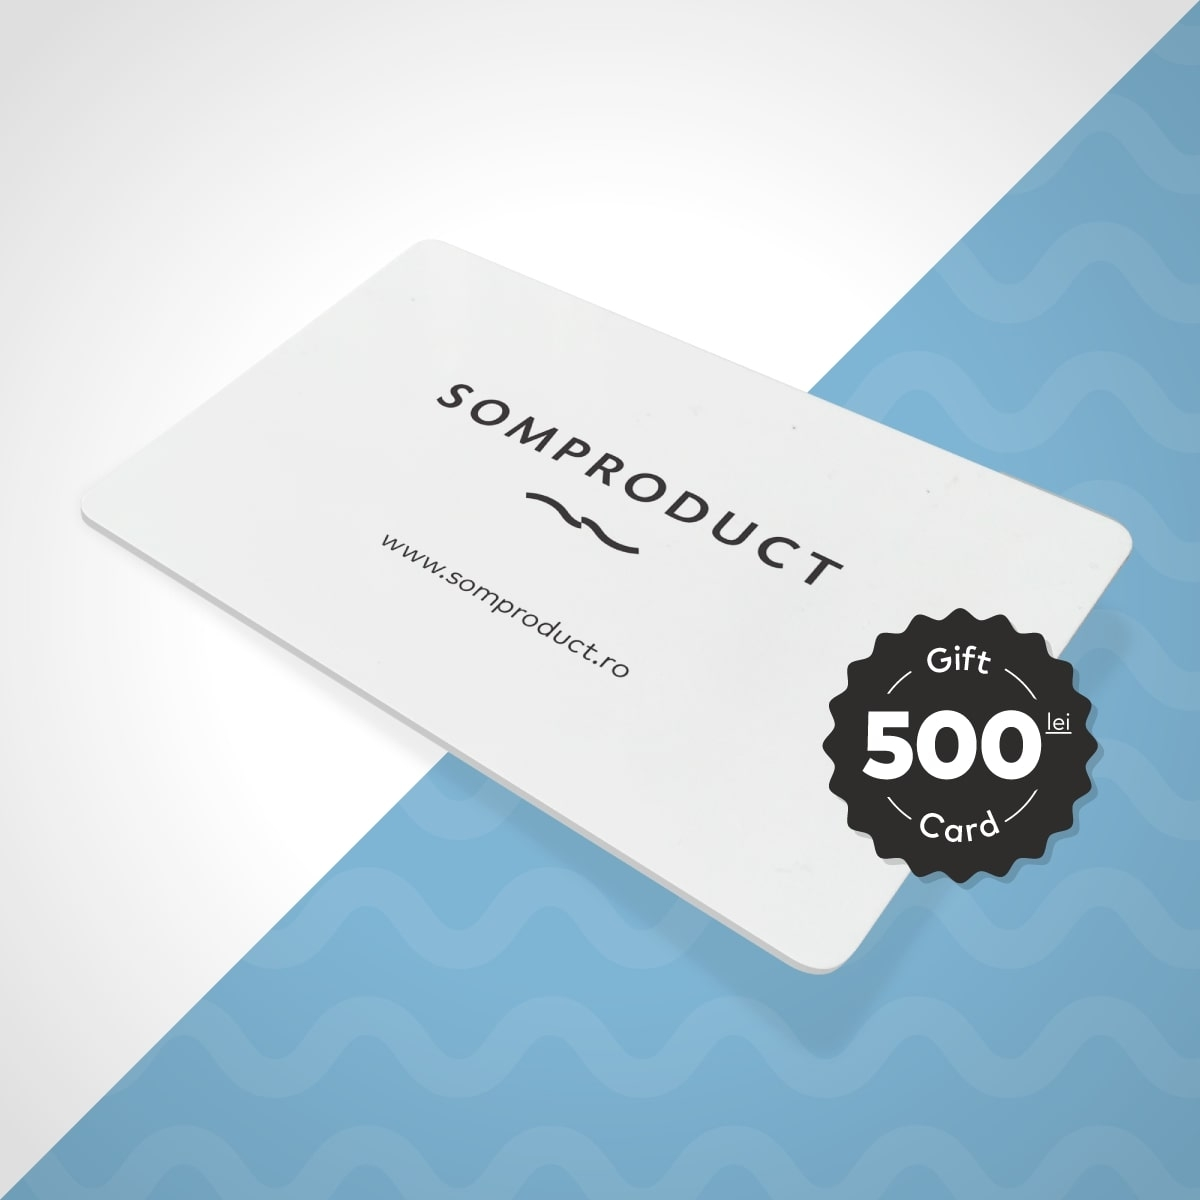 Gift Card SomProduct 500 Lei imagine